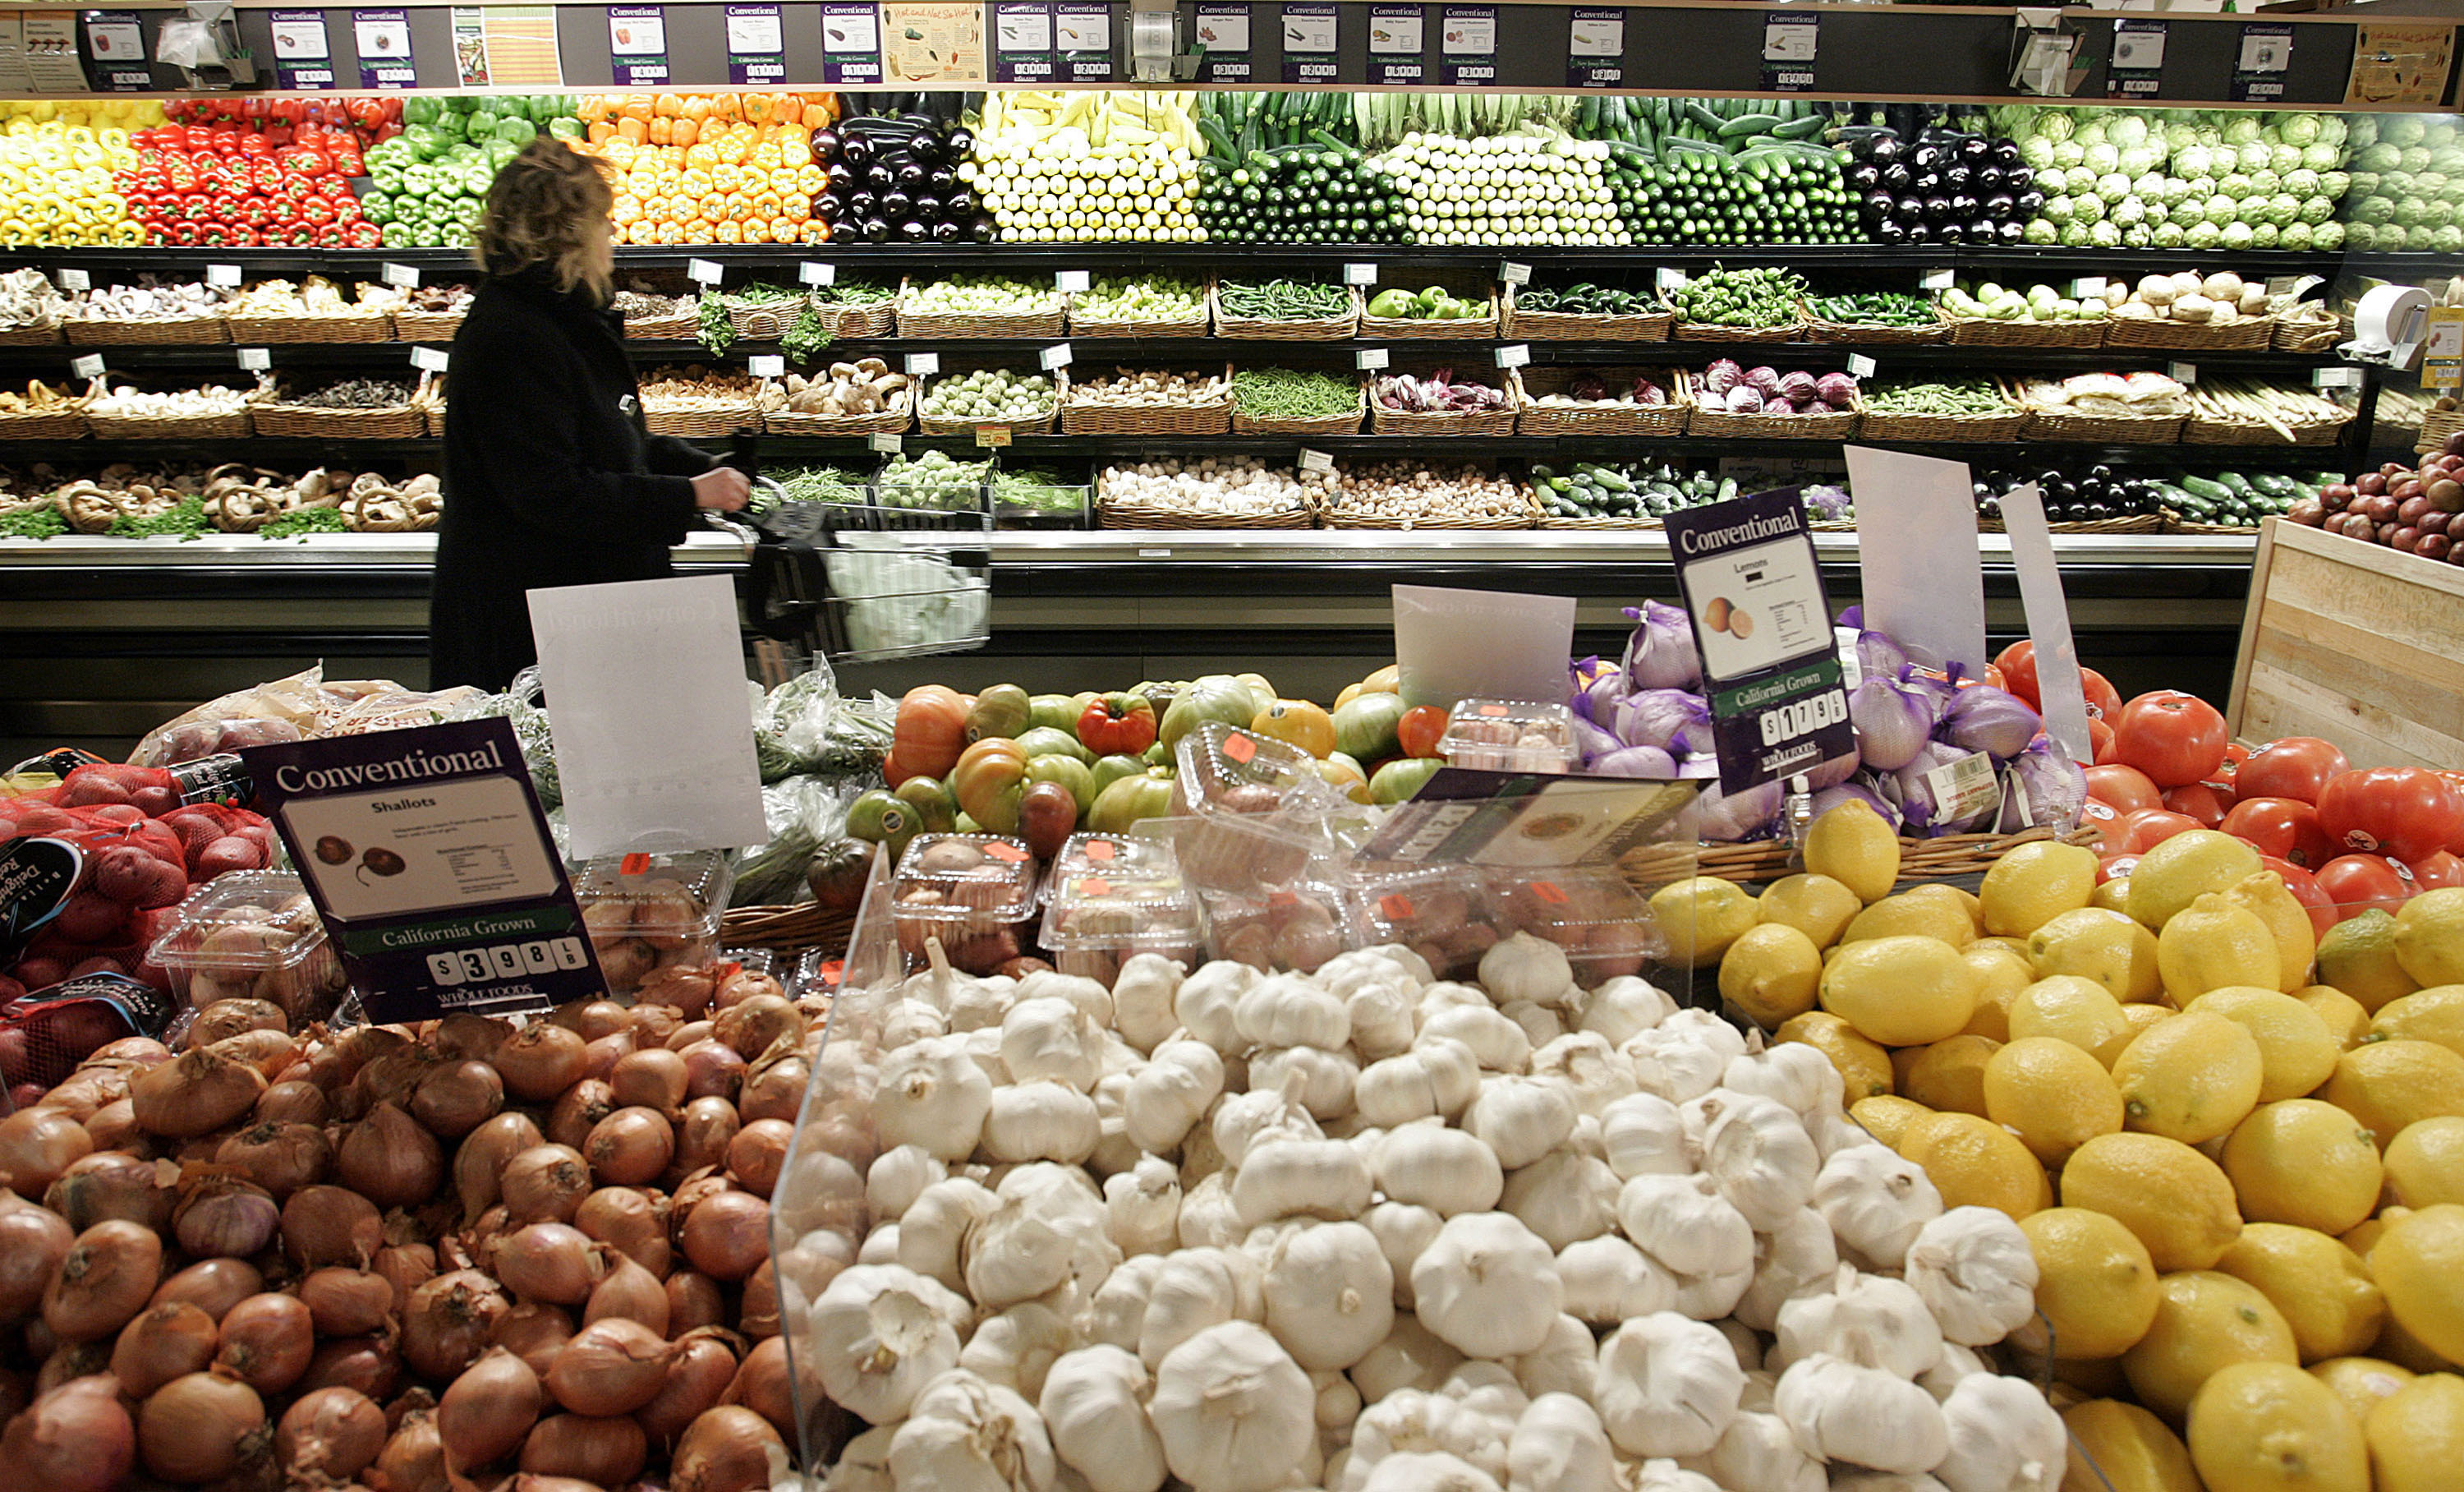 Whole Foods Has an Image Problem, Says New Survey